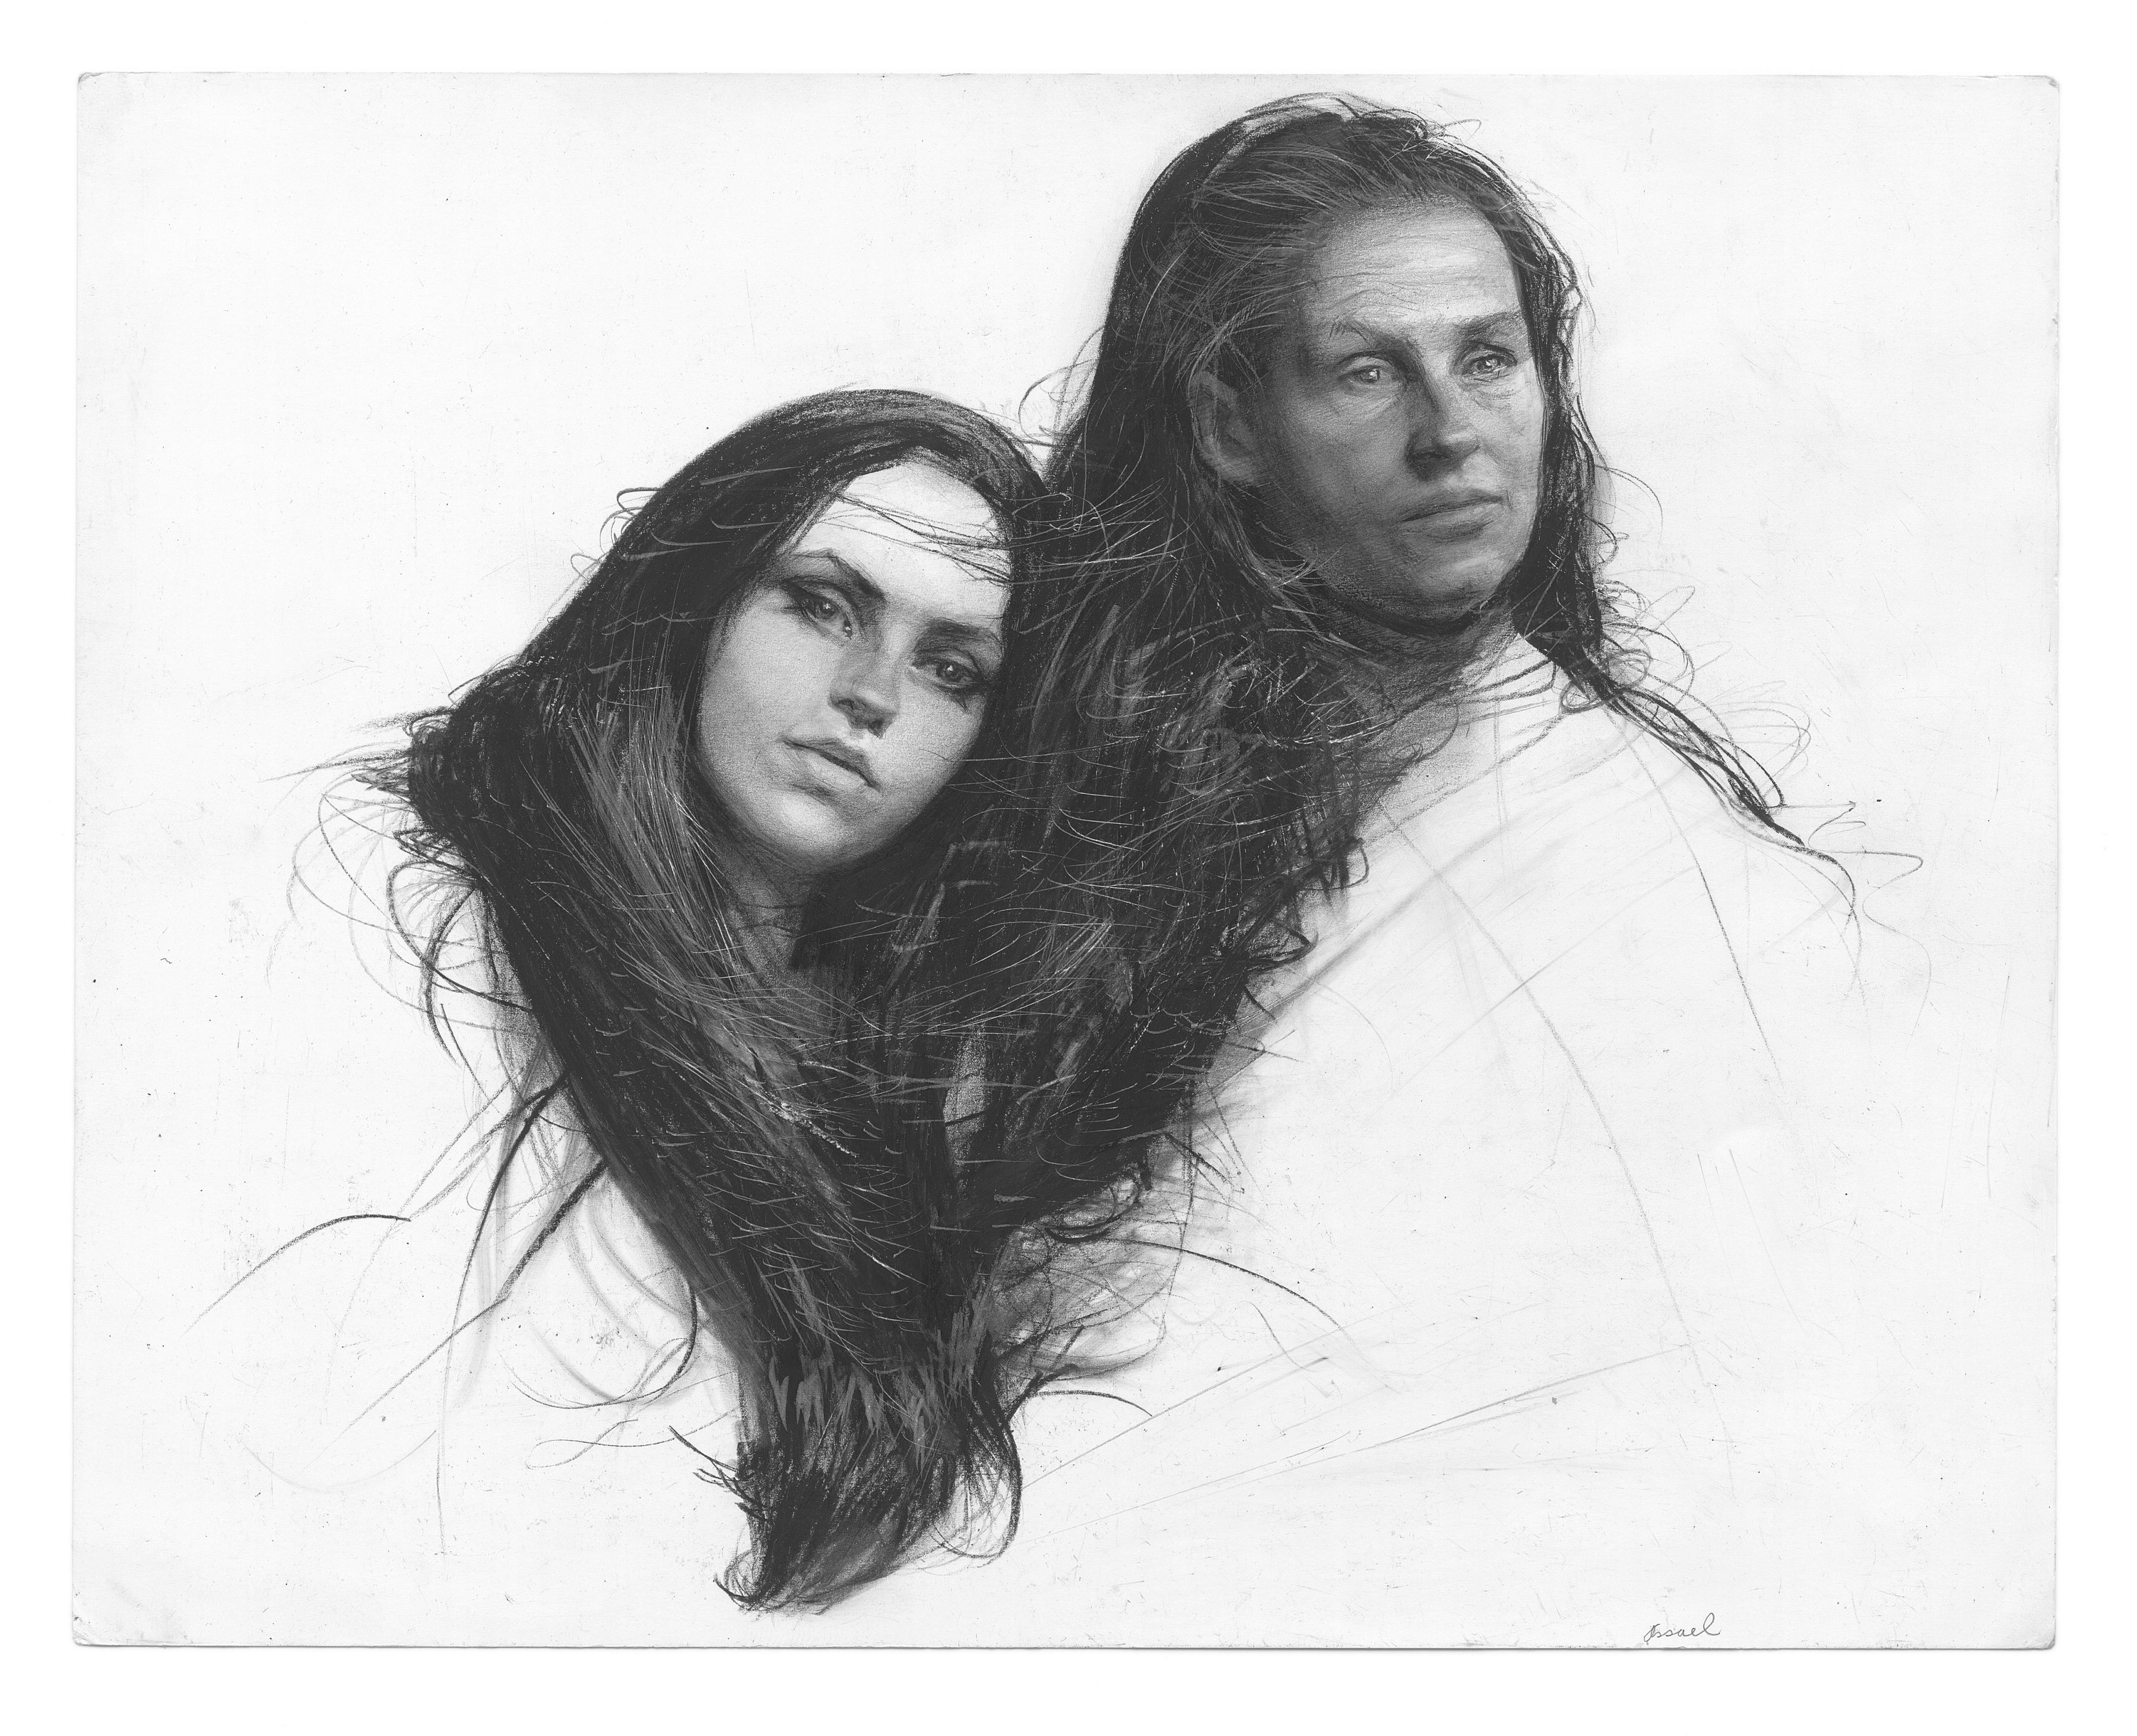 Steven Assael, Leah and Marilyn, 2013, graphite and crayon on paper, 11 x 14 inches